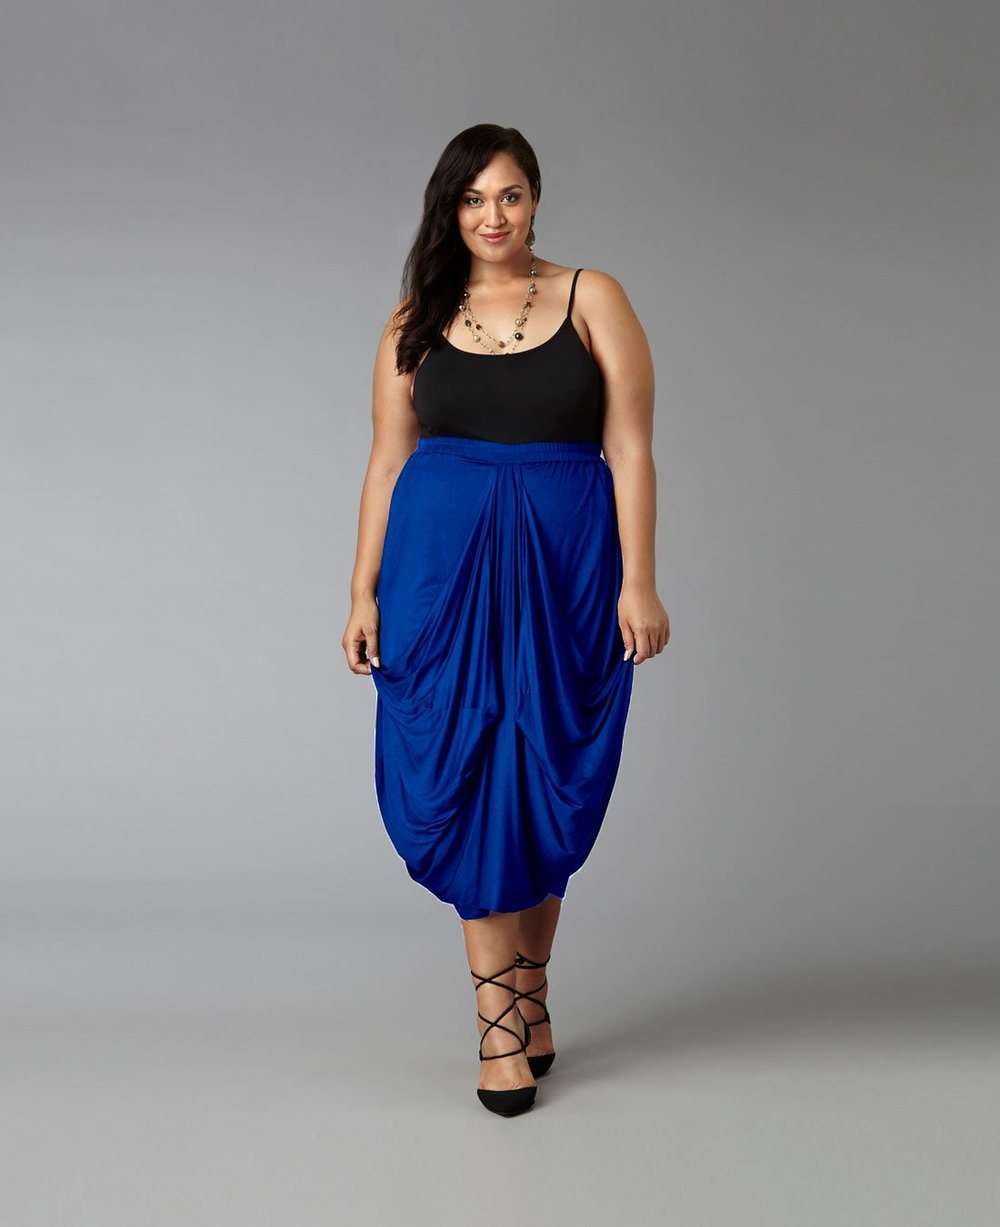 Drape Maxi Skirt. Yona New York. $129.